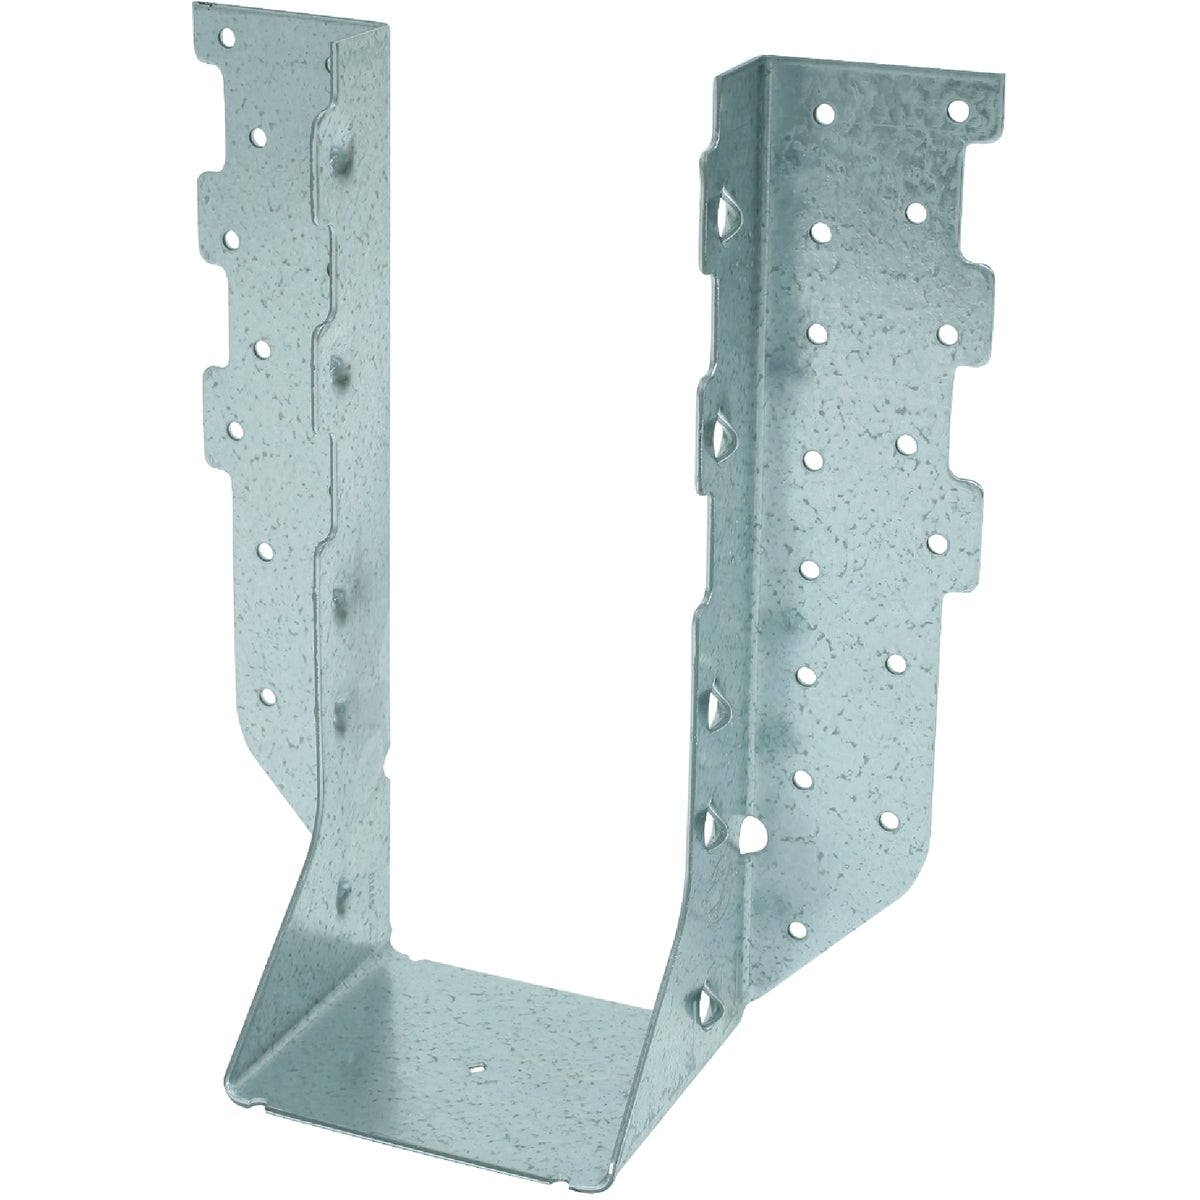 4X10 DBL SHR HANGER - HHUS410 by Simpson Strong Tie